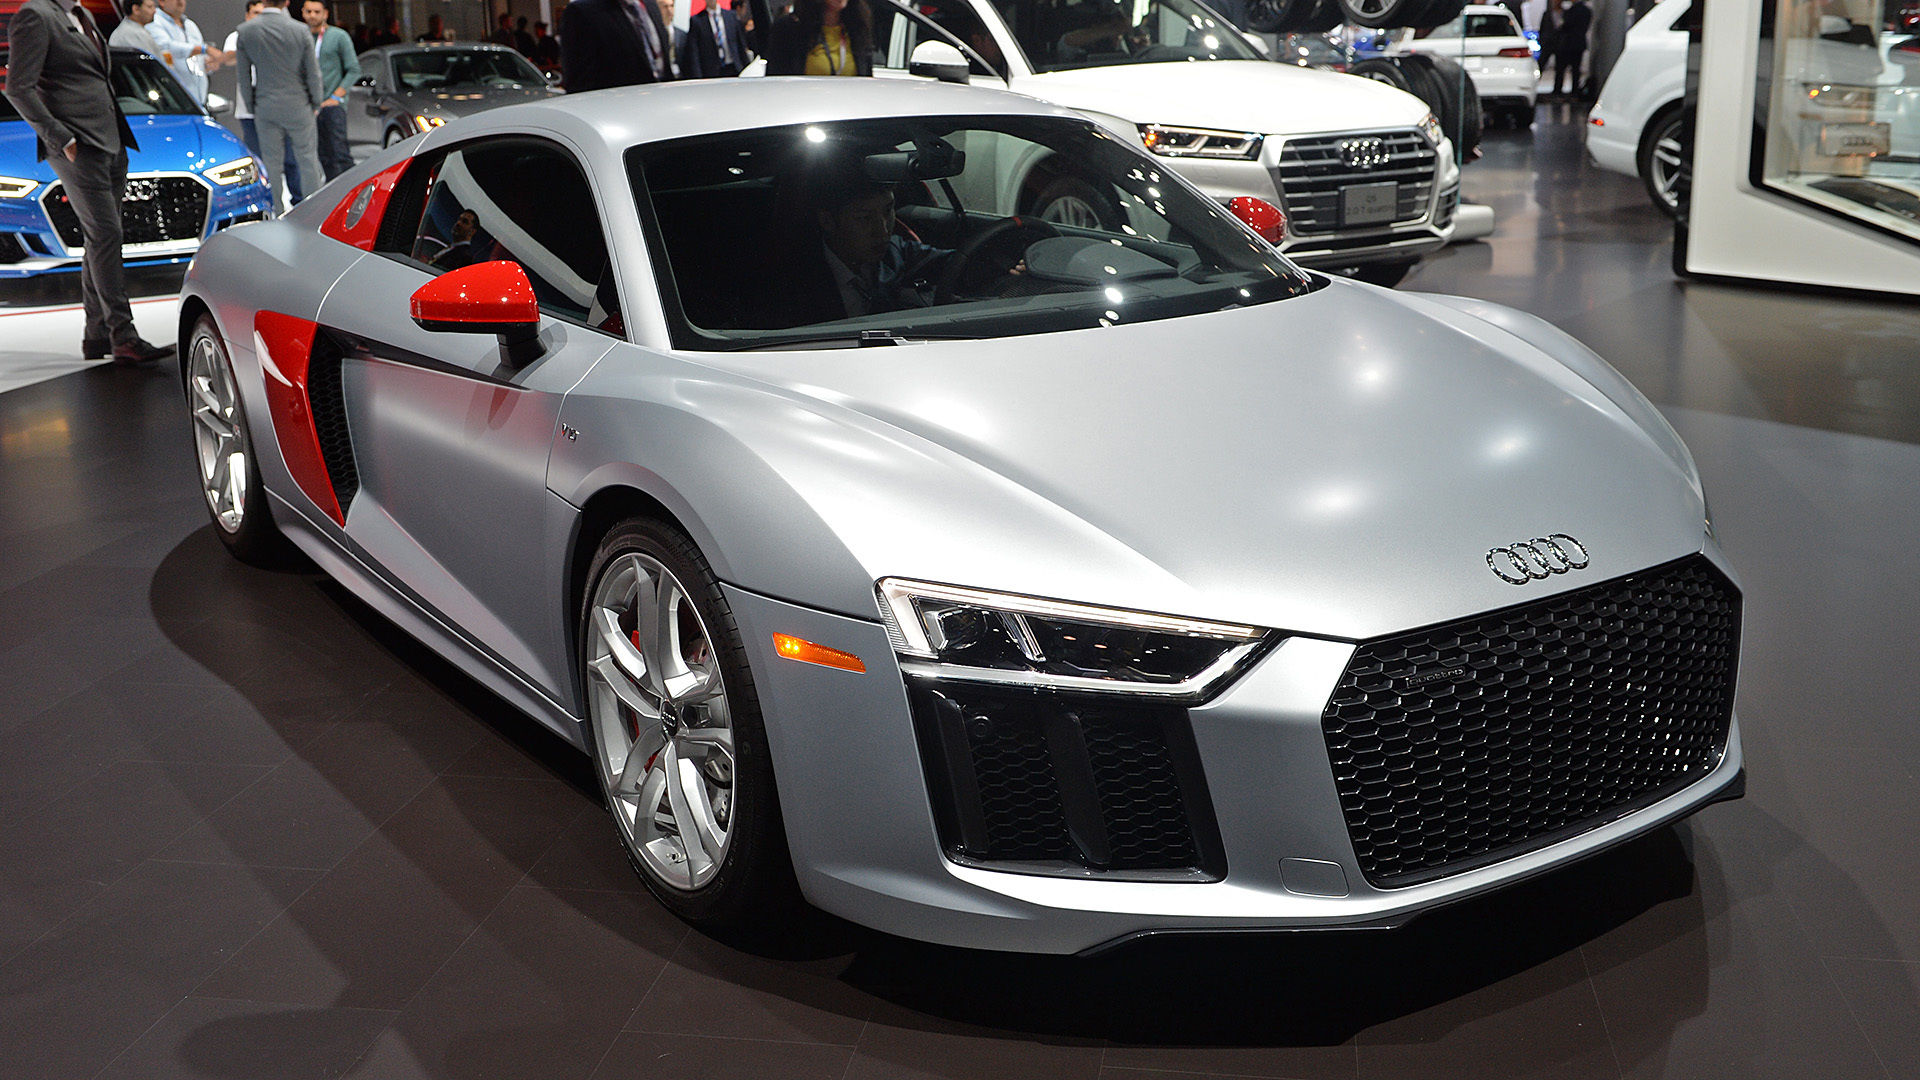 Watch 2017 Audi R8 Coupe Sport Edition Revealed In New